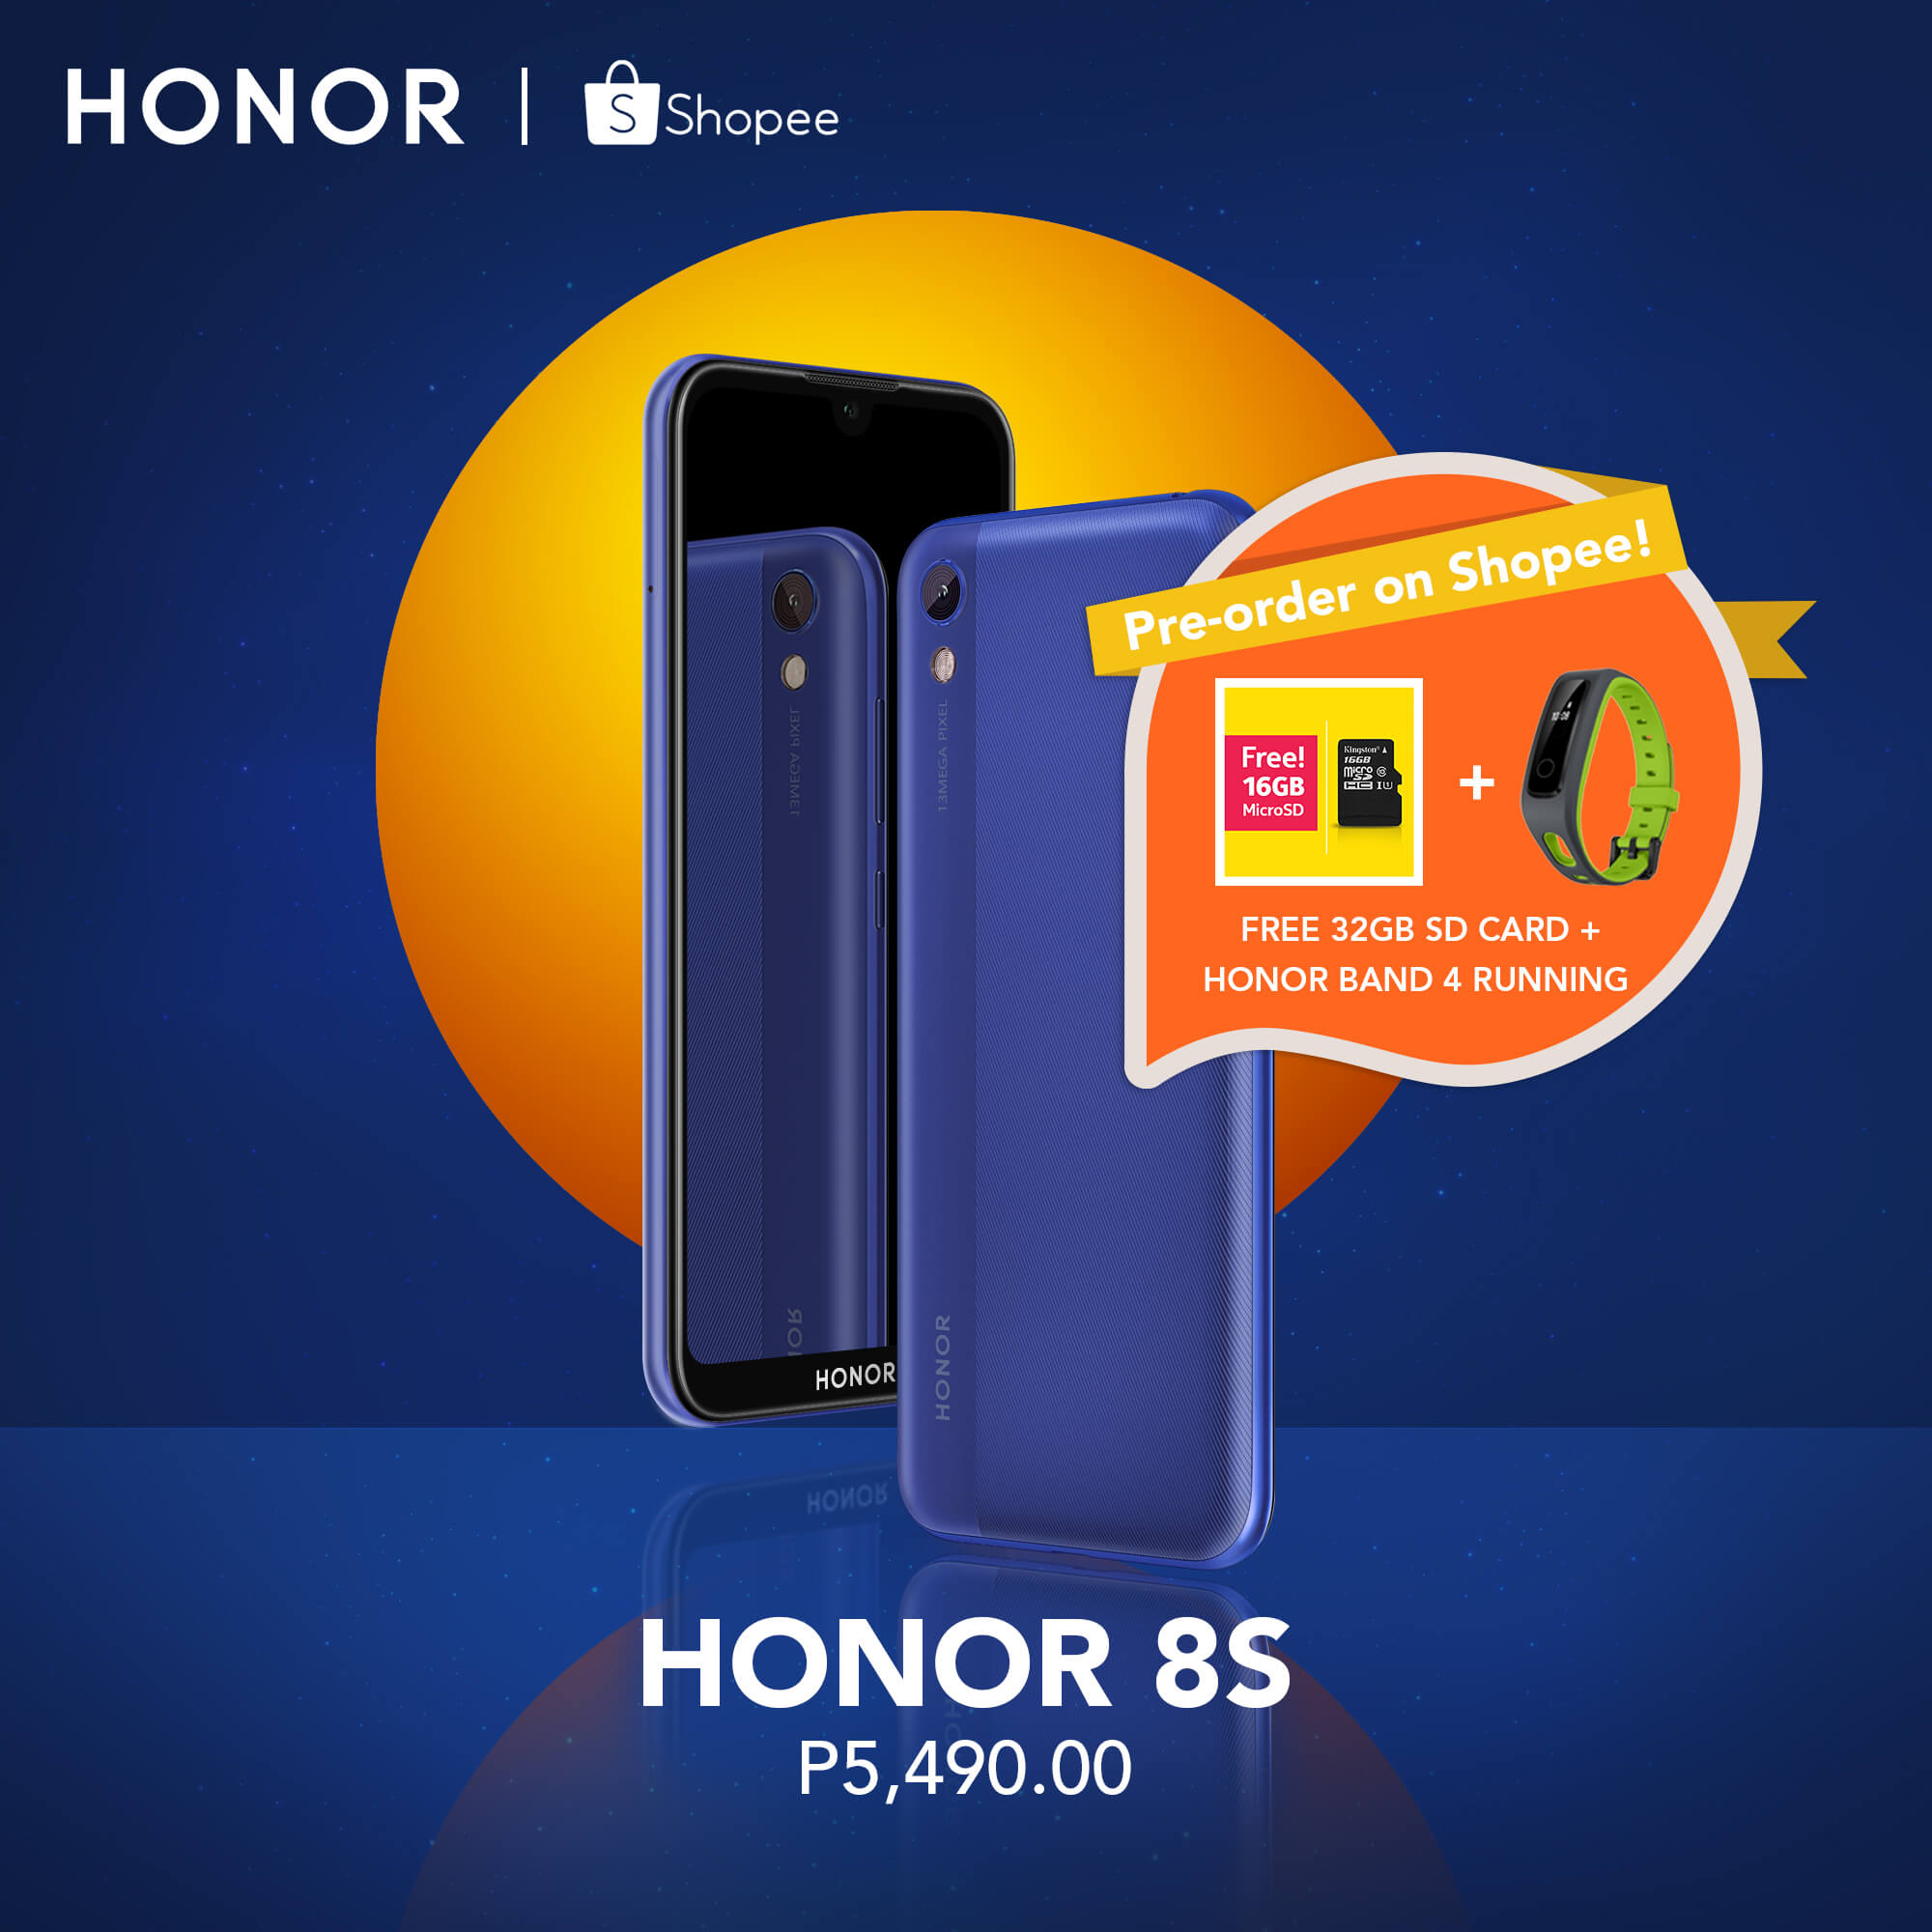 HONOR 8S, HONOR 8S Gets Priced, Pre-Order Starts on July 13!, Gadget Pilipinas